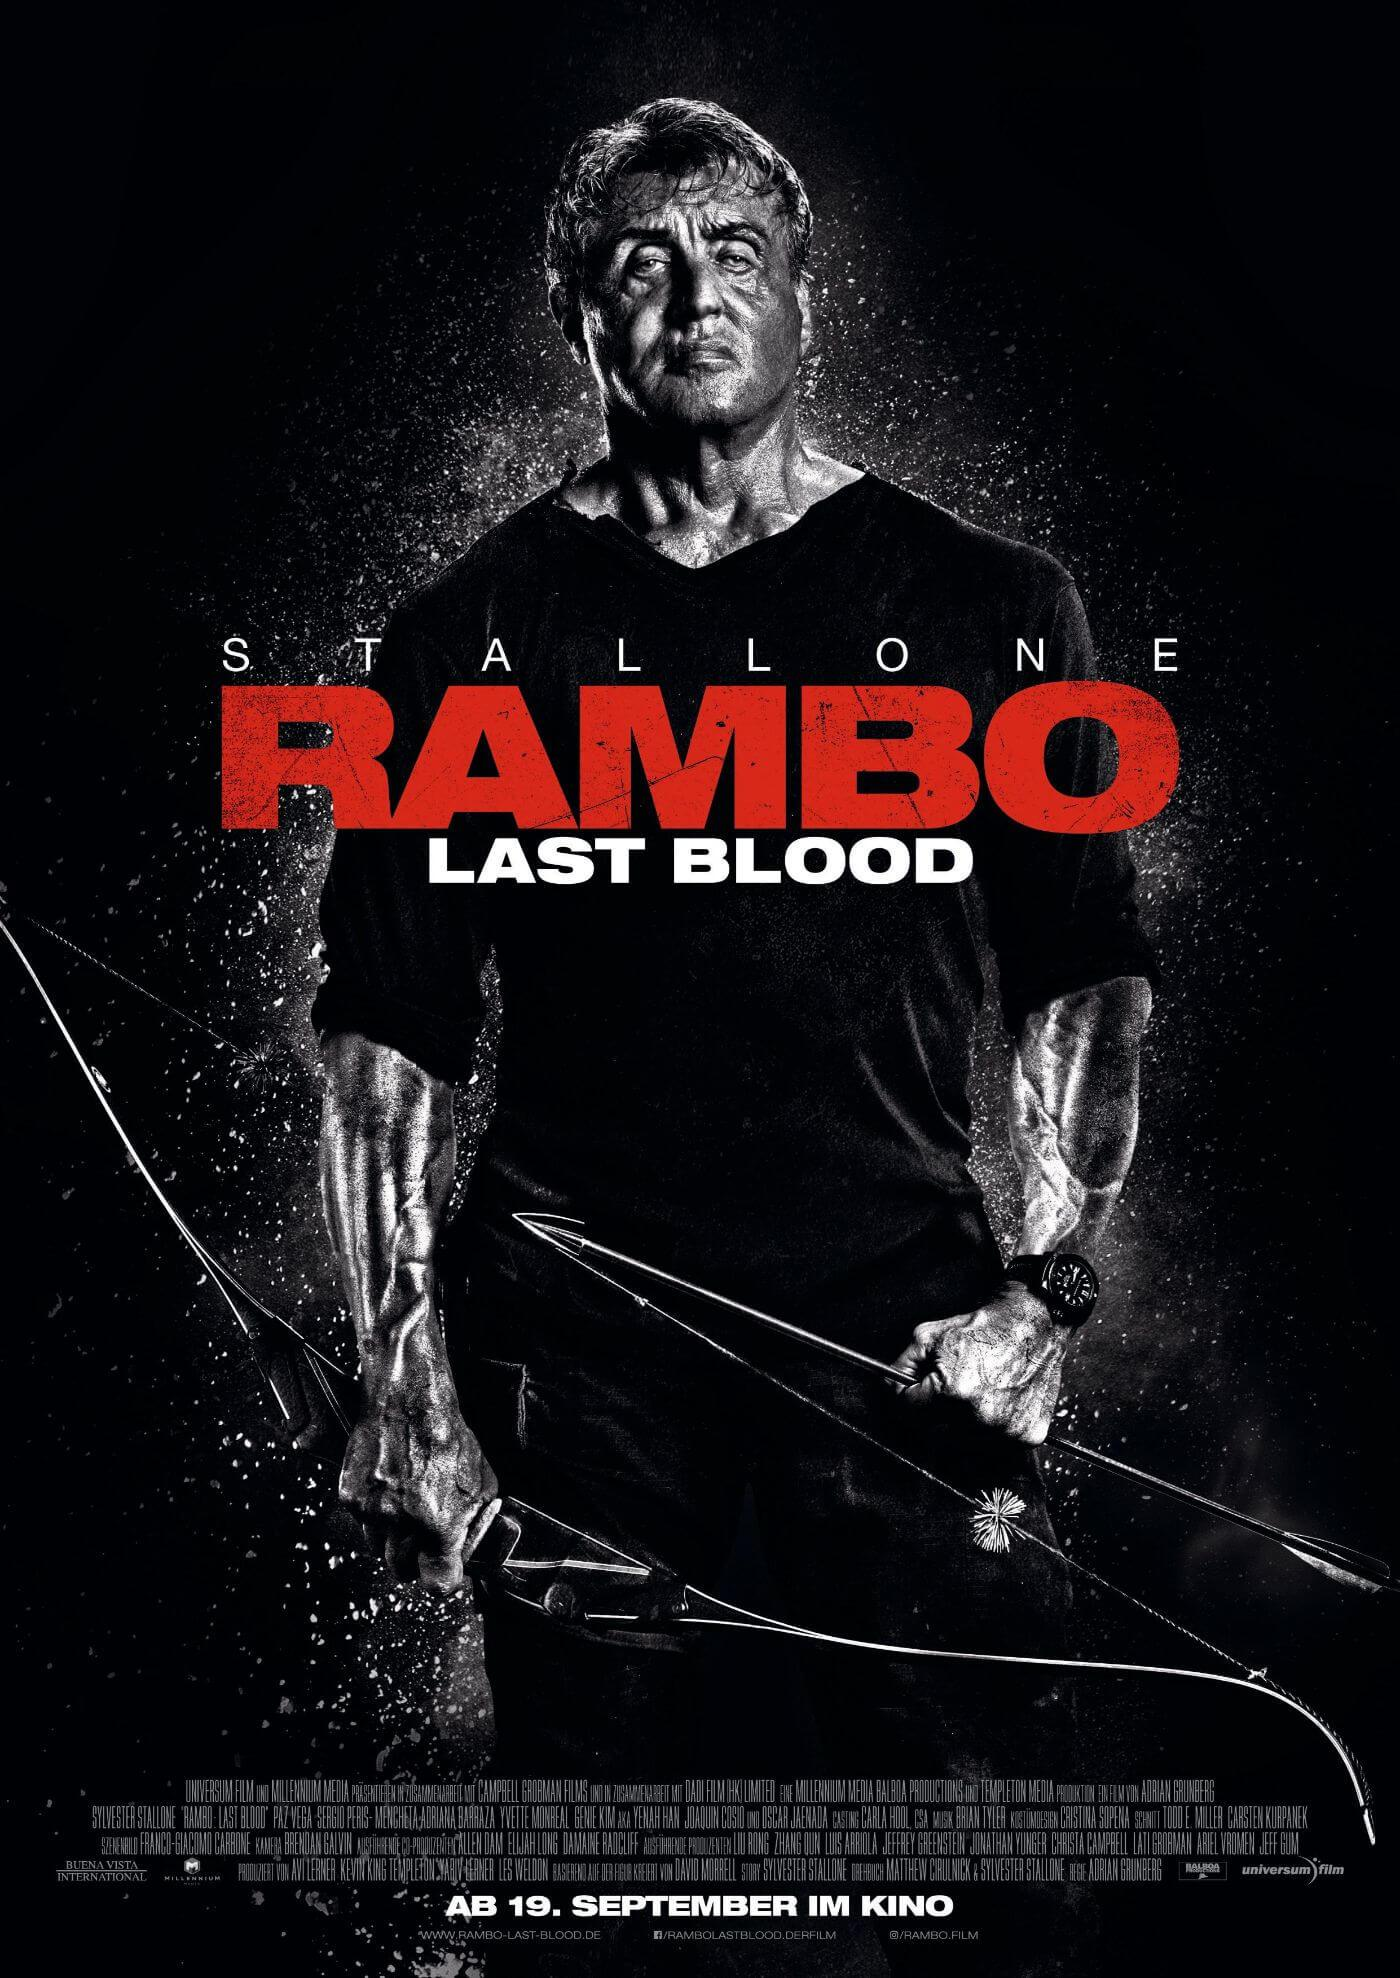 Filmski plakati - Page 33 Rambo_-_Last_Blood_-_Sylvester_Sallone_-_Hollywood_English_Action_Movie_Poster_6f0dc8b5-a1ad-4103-b482-3f9a6e625462